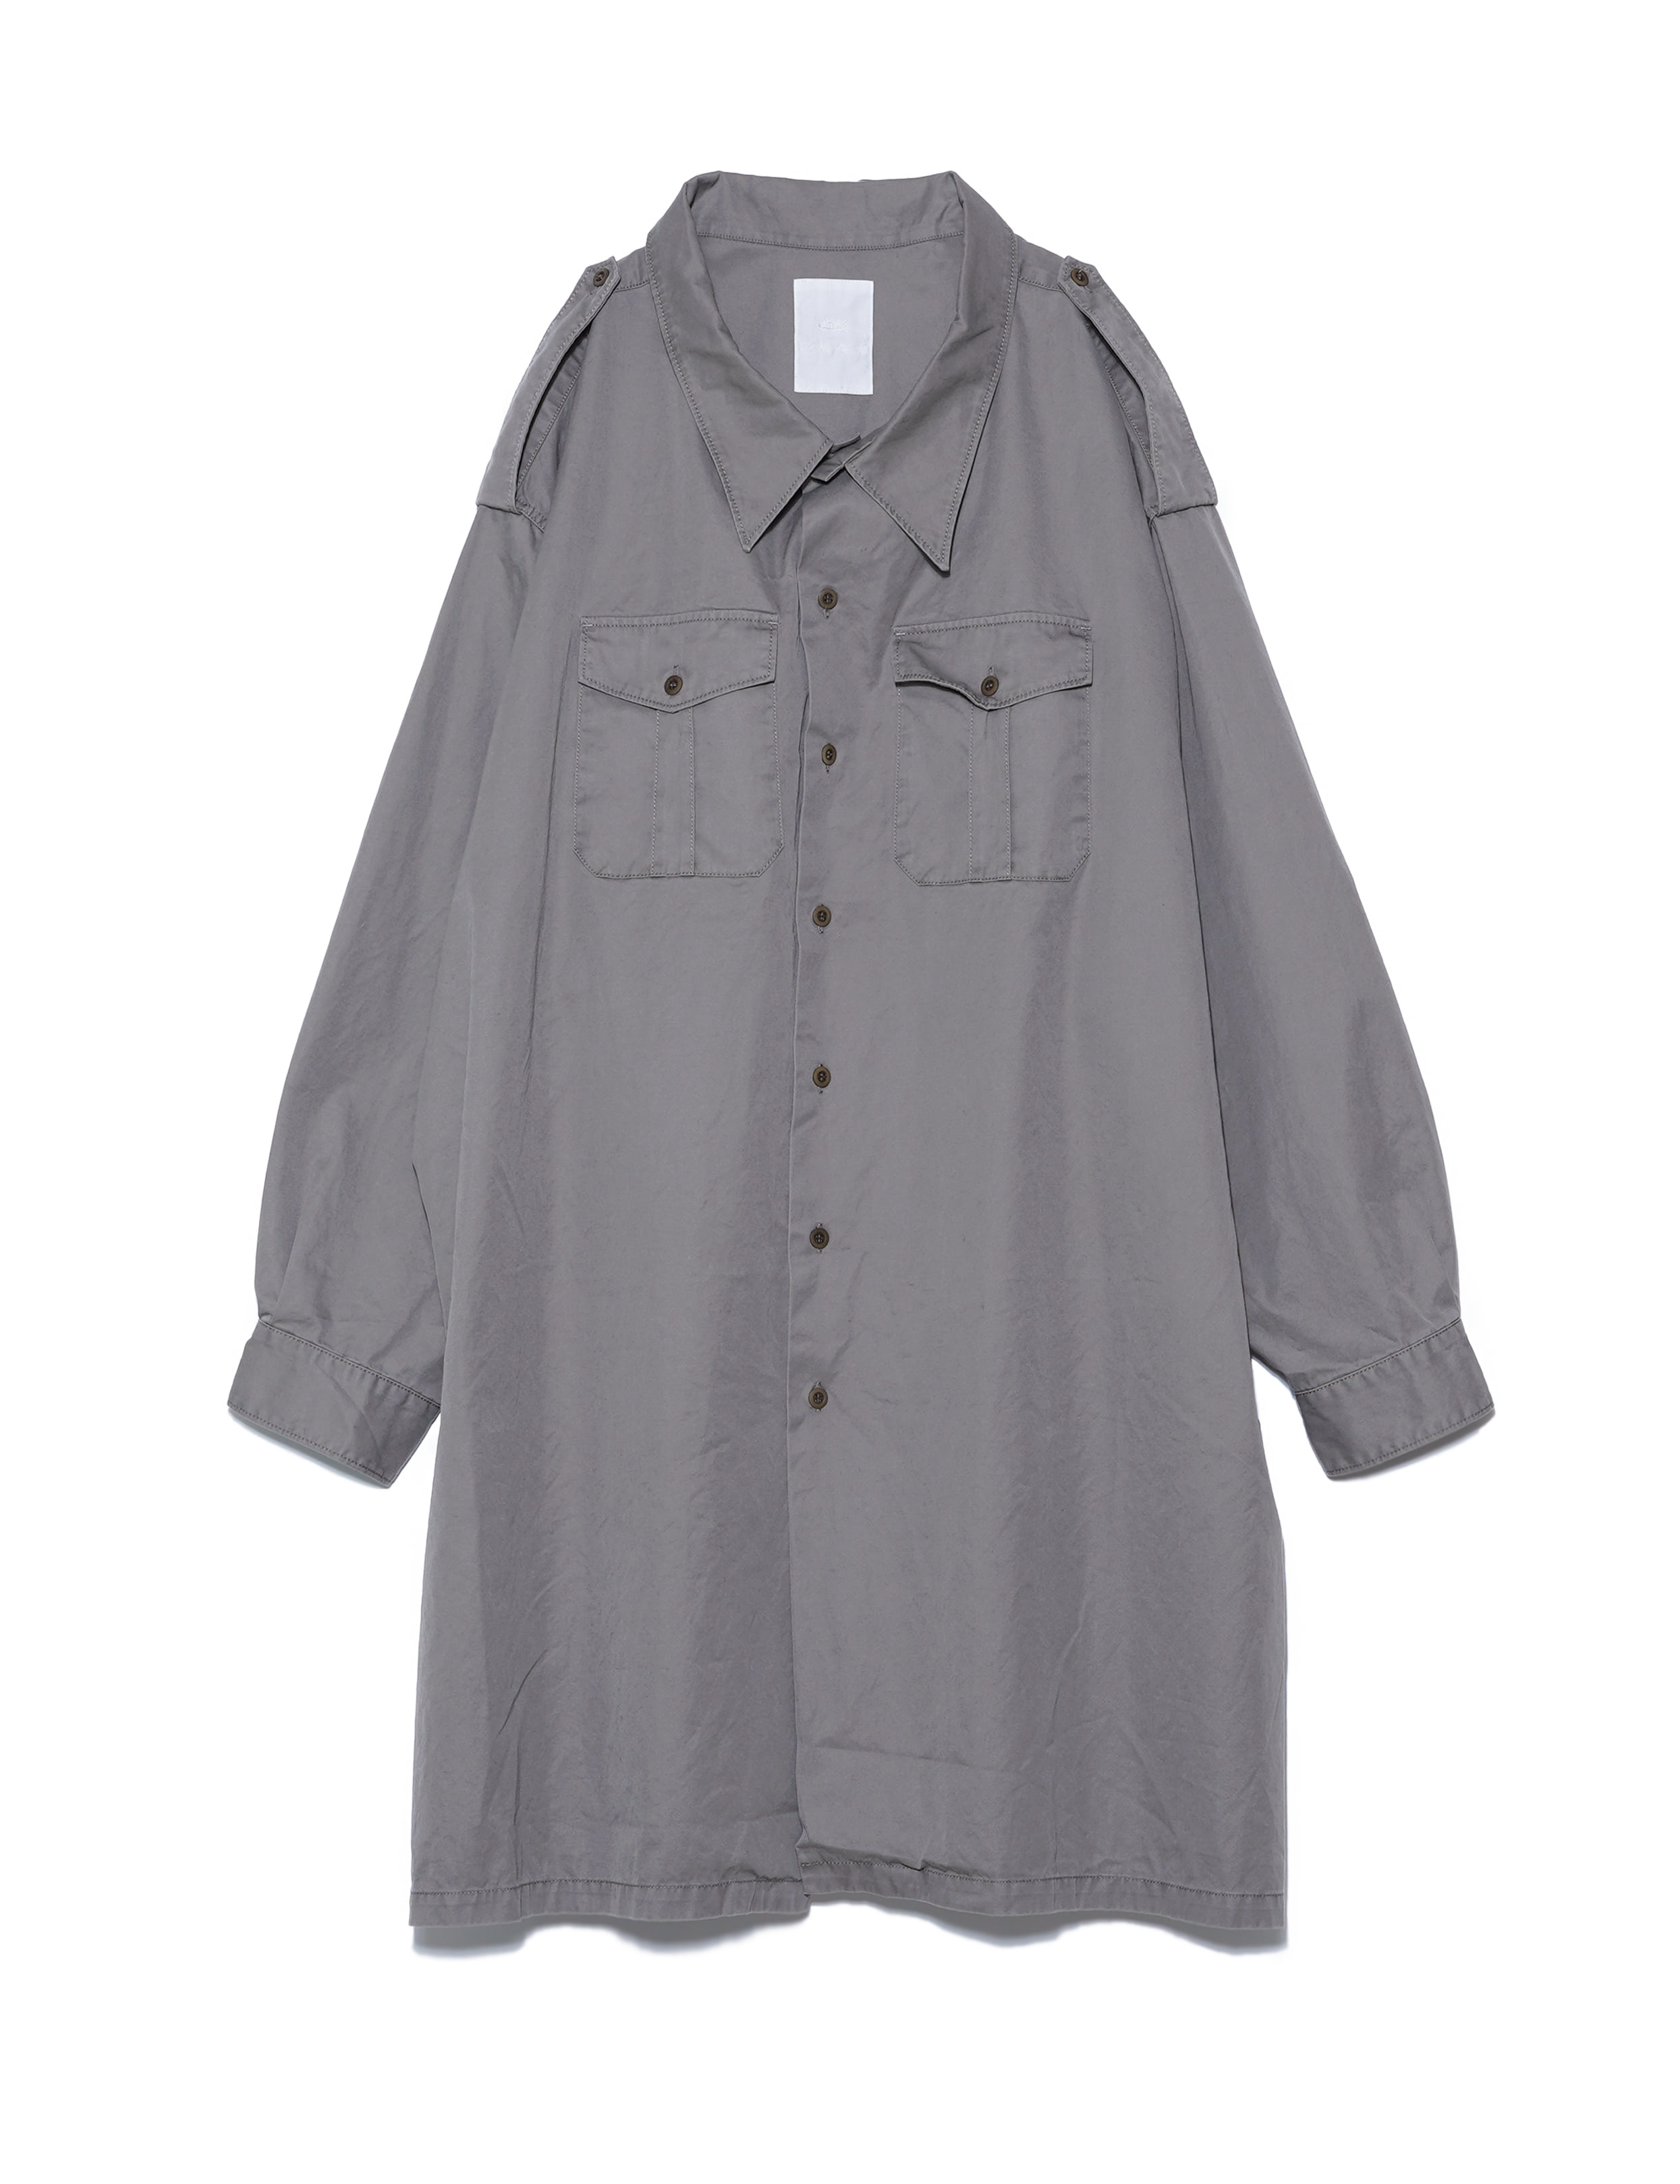 5X SHIRT/ TYPE.2 LONG (MOSS GRAY)